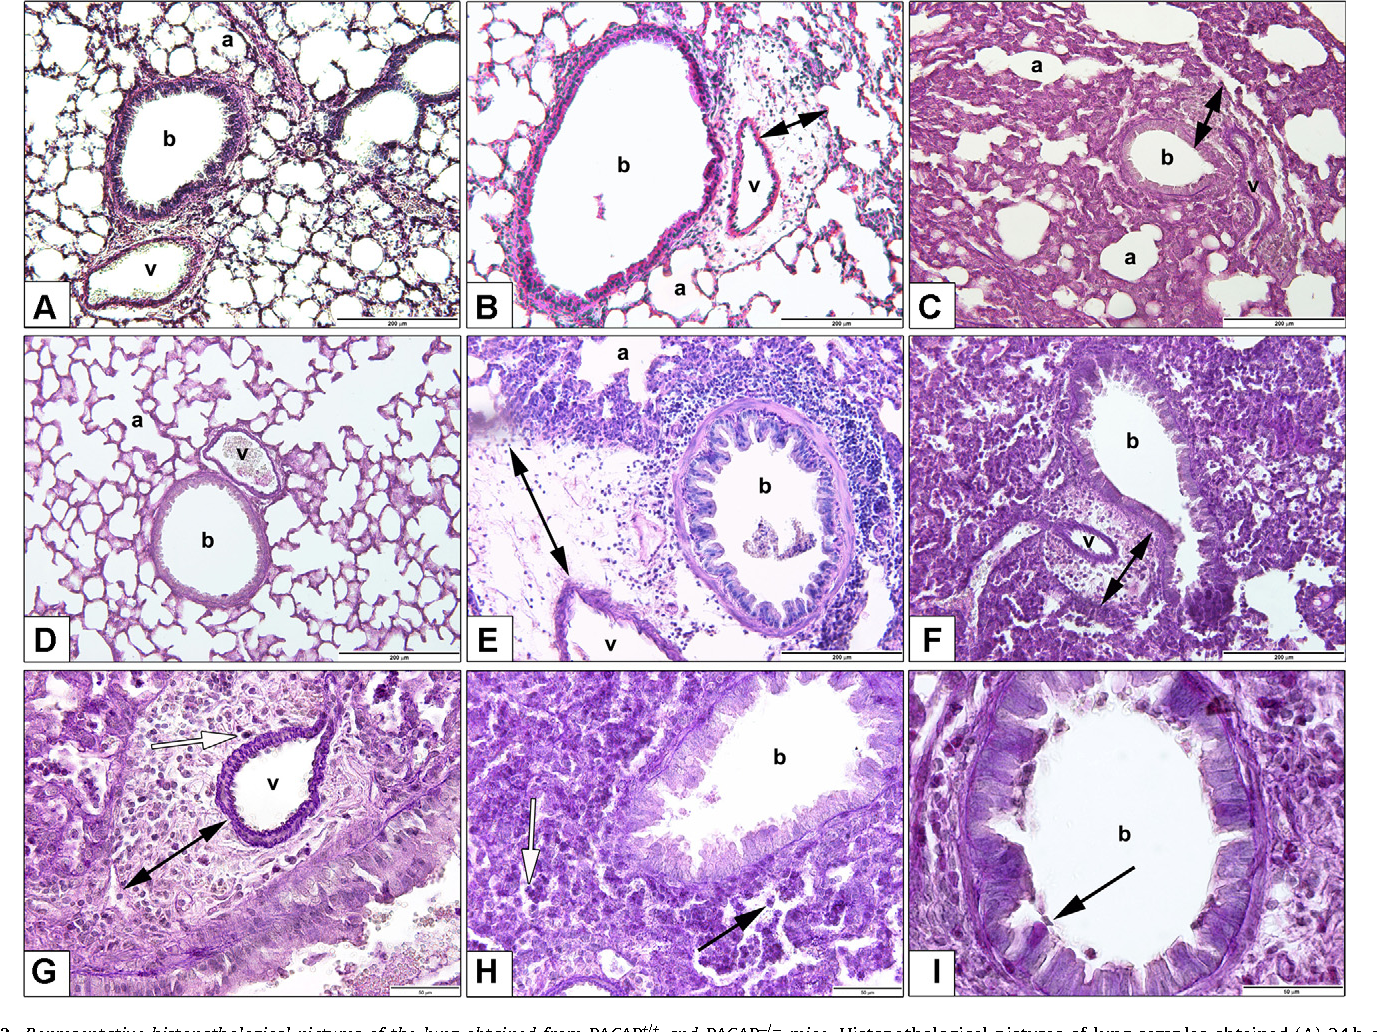 Fig. 2. Representative histopathological pictures of the lung obtained from PACAP+/+ and PACAP−/− mice. Histopathological pictures of lung samples obtained (A) 24 h after intranasal saline treatment (non-inflamed control); (B) 6 h following LPS administration; and (C) 24 h after LPS-treatment of PACAP+/+ mice. In comparison, the lower panels show the respective pictures of PACAP−/− mouse lung samples: (D) saline-treatment; (E) 6 h after LPS-treatment; (F) 24 h after LPS-administration. Double headed arrows in panels B, C, E and F indicate the perivascular edema formation. Panels G–H represent higher magnifications of the representative histopathological alterations: perivascular e a, wh w ow). S m in pa